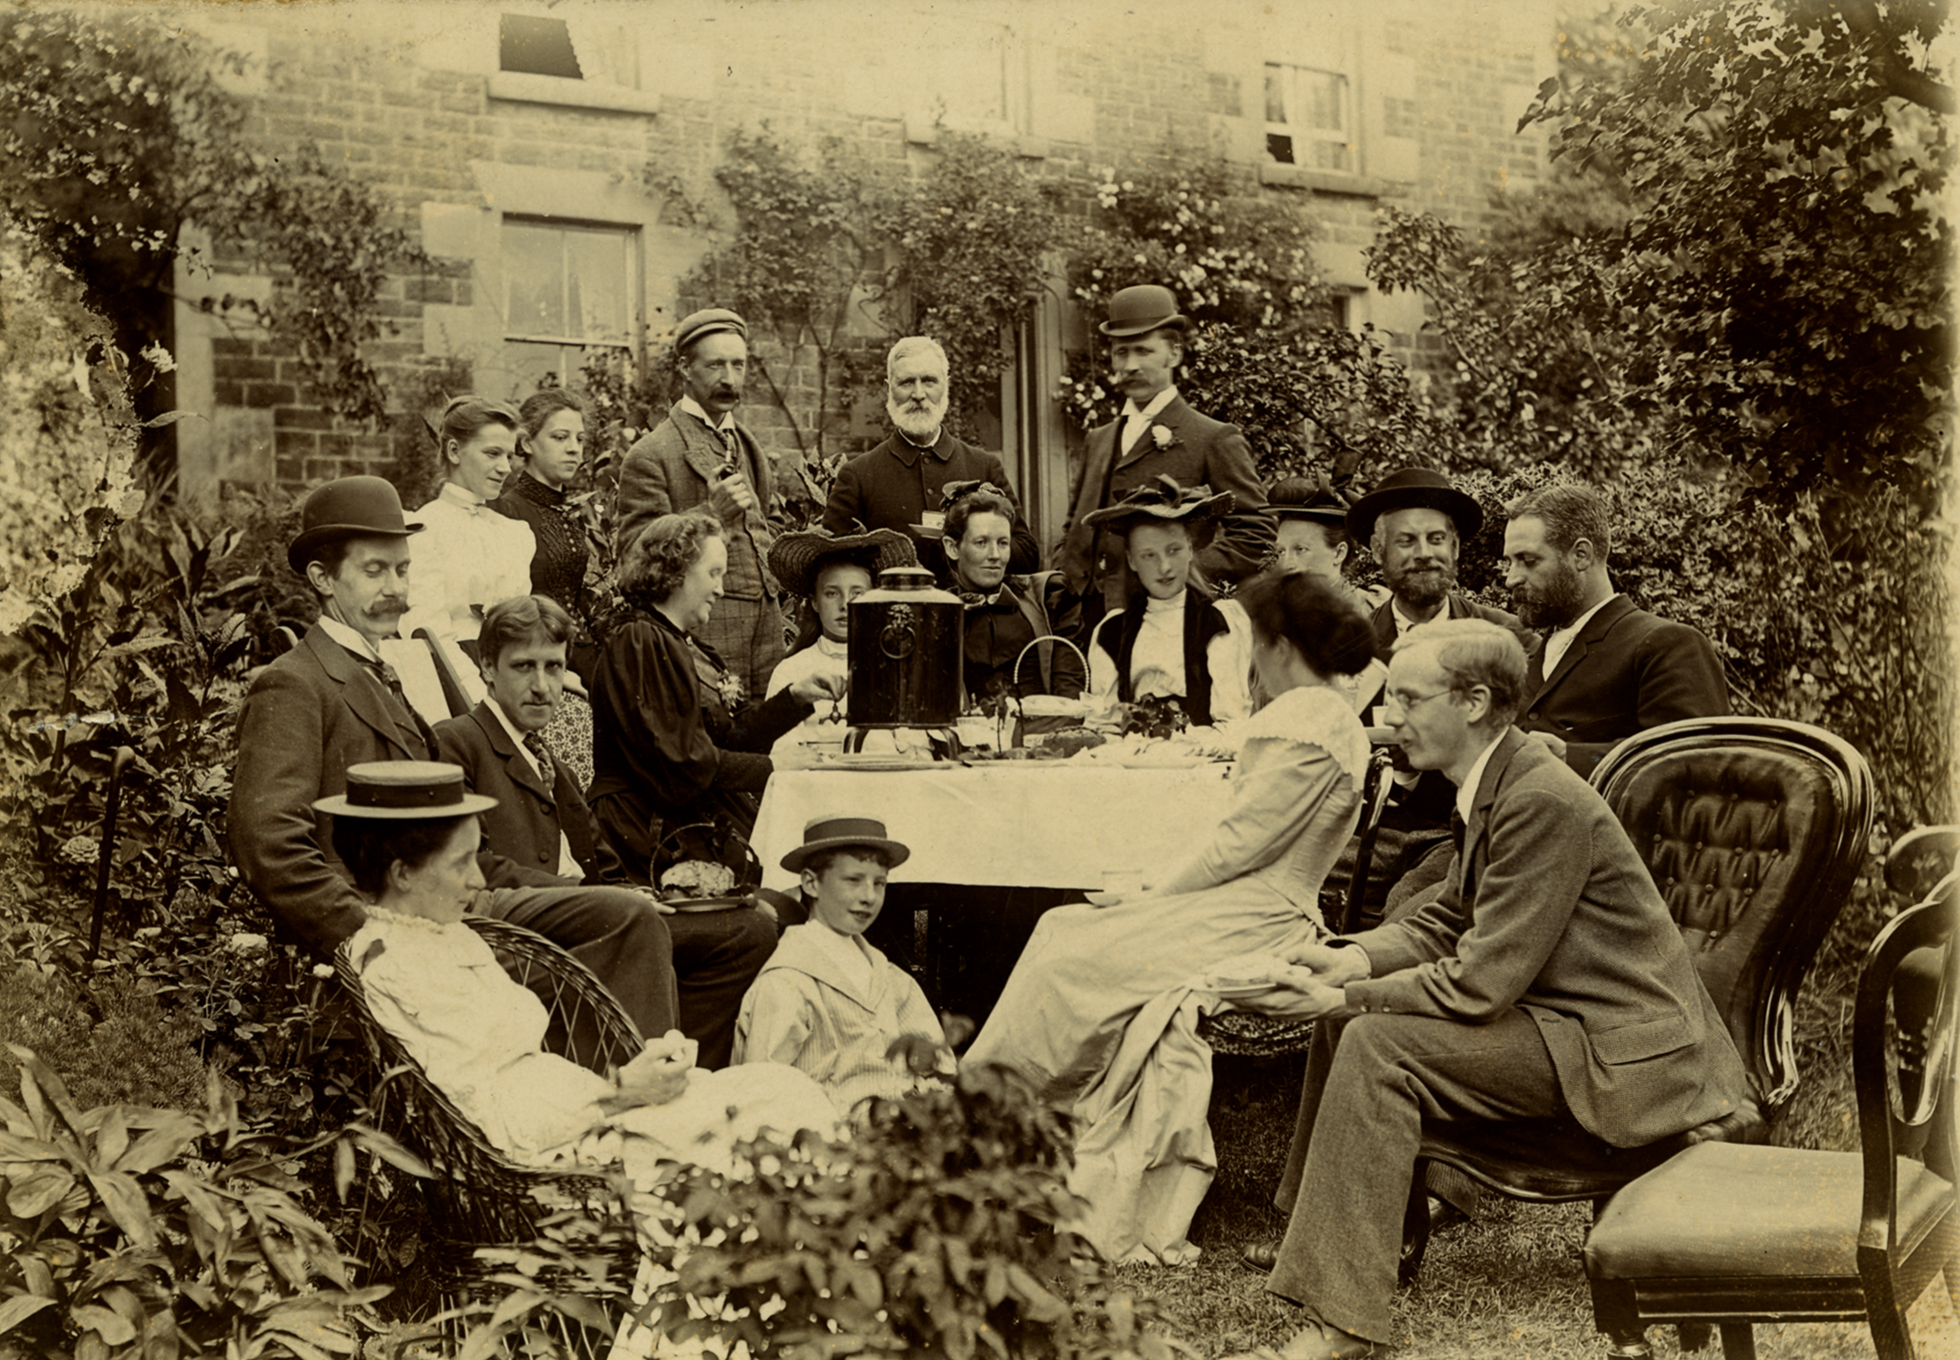 A black-and-white photograph of a group of people having a tea party in a garden setting in 1894.